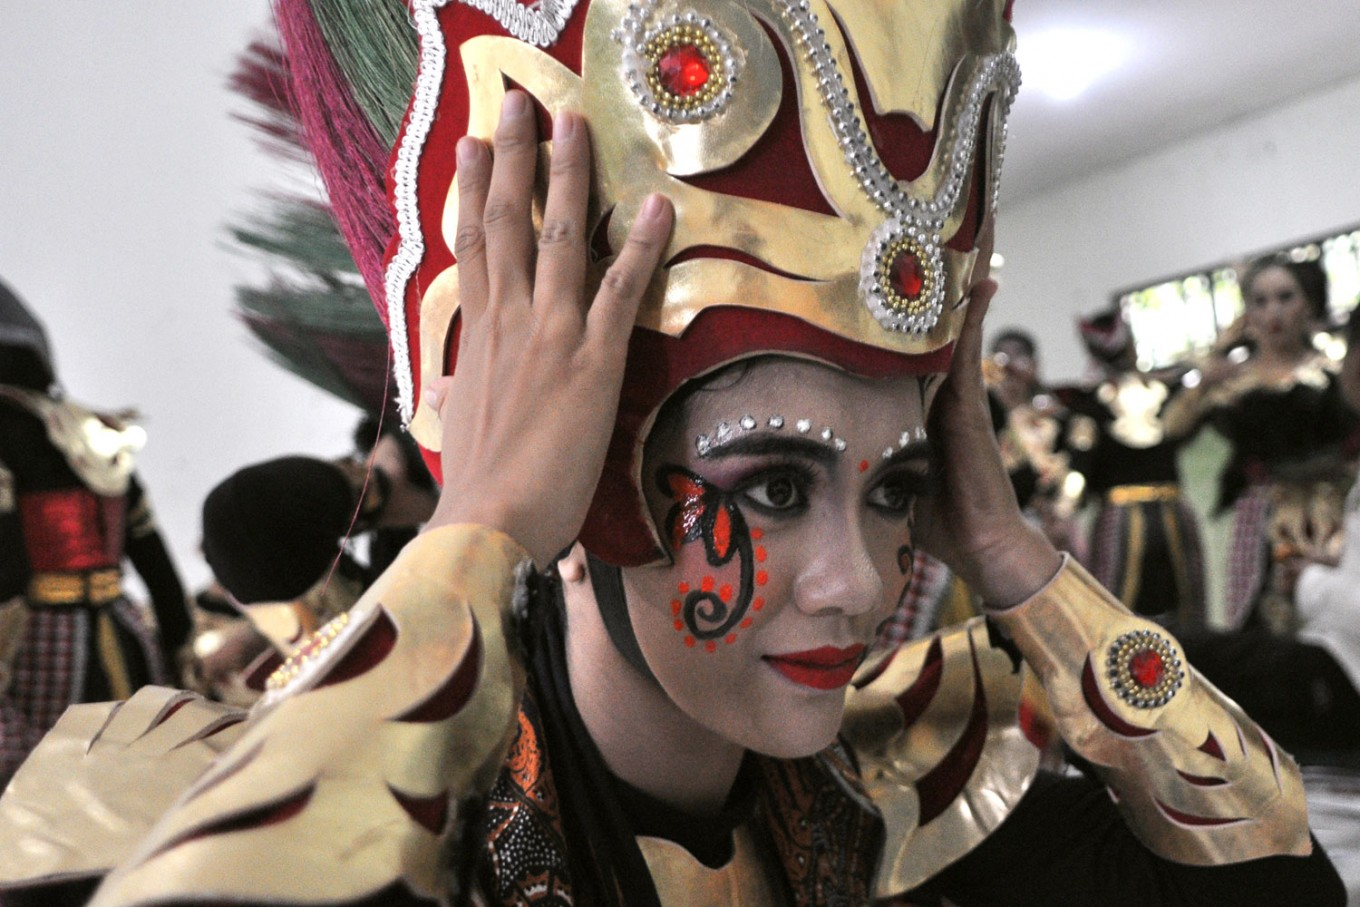 A Topeng Ireng dancer from Boyolali, Central Java, puts on her headdress before a